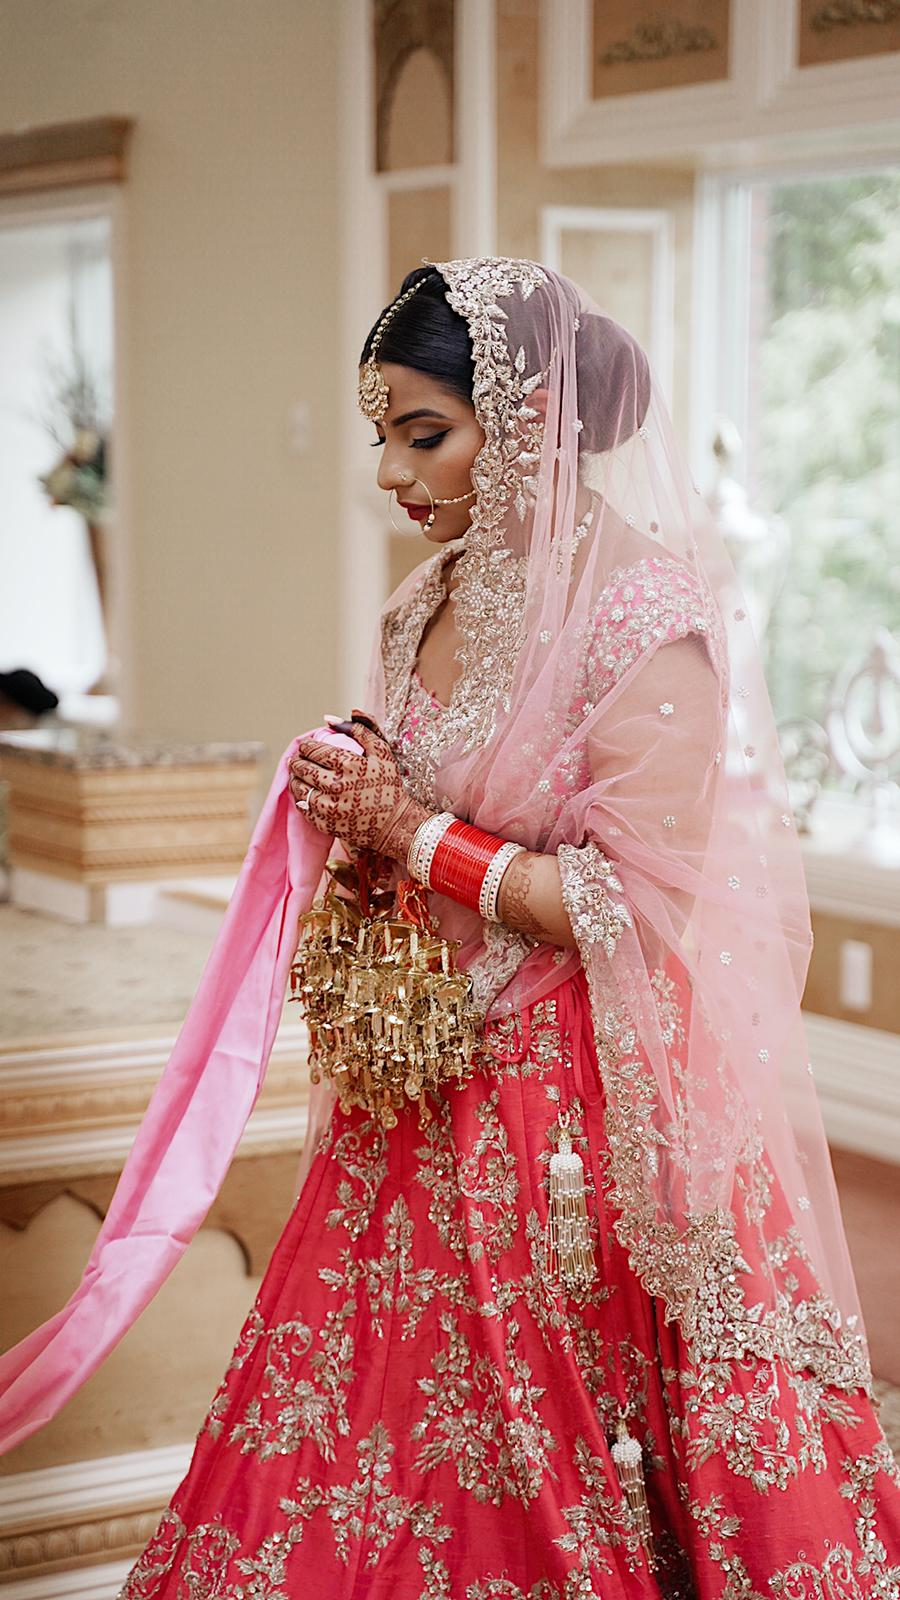 Real Bride Eshu in Anushree Reddy Lehenga @ The Grand Trunk - The Grand Trunk